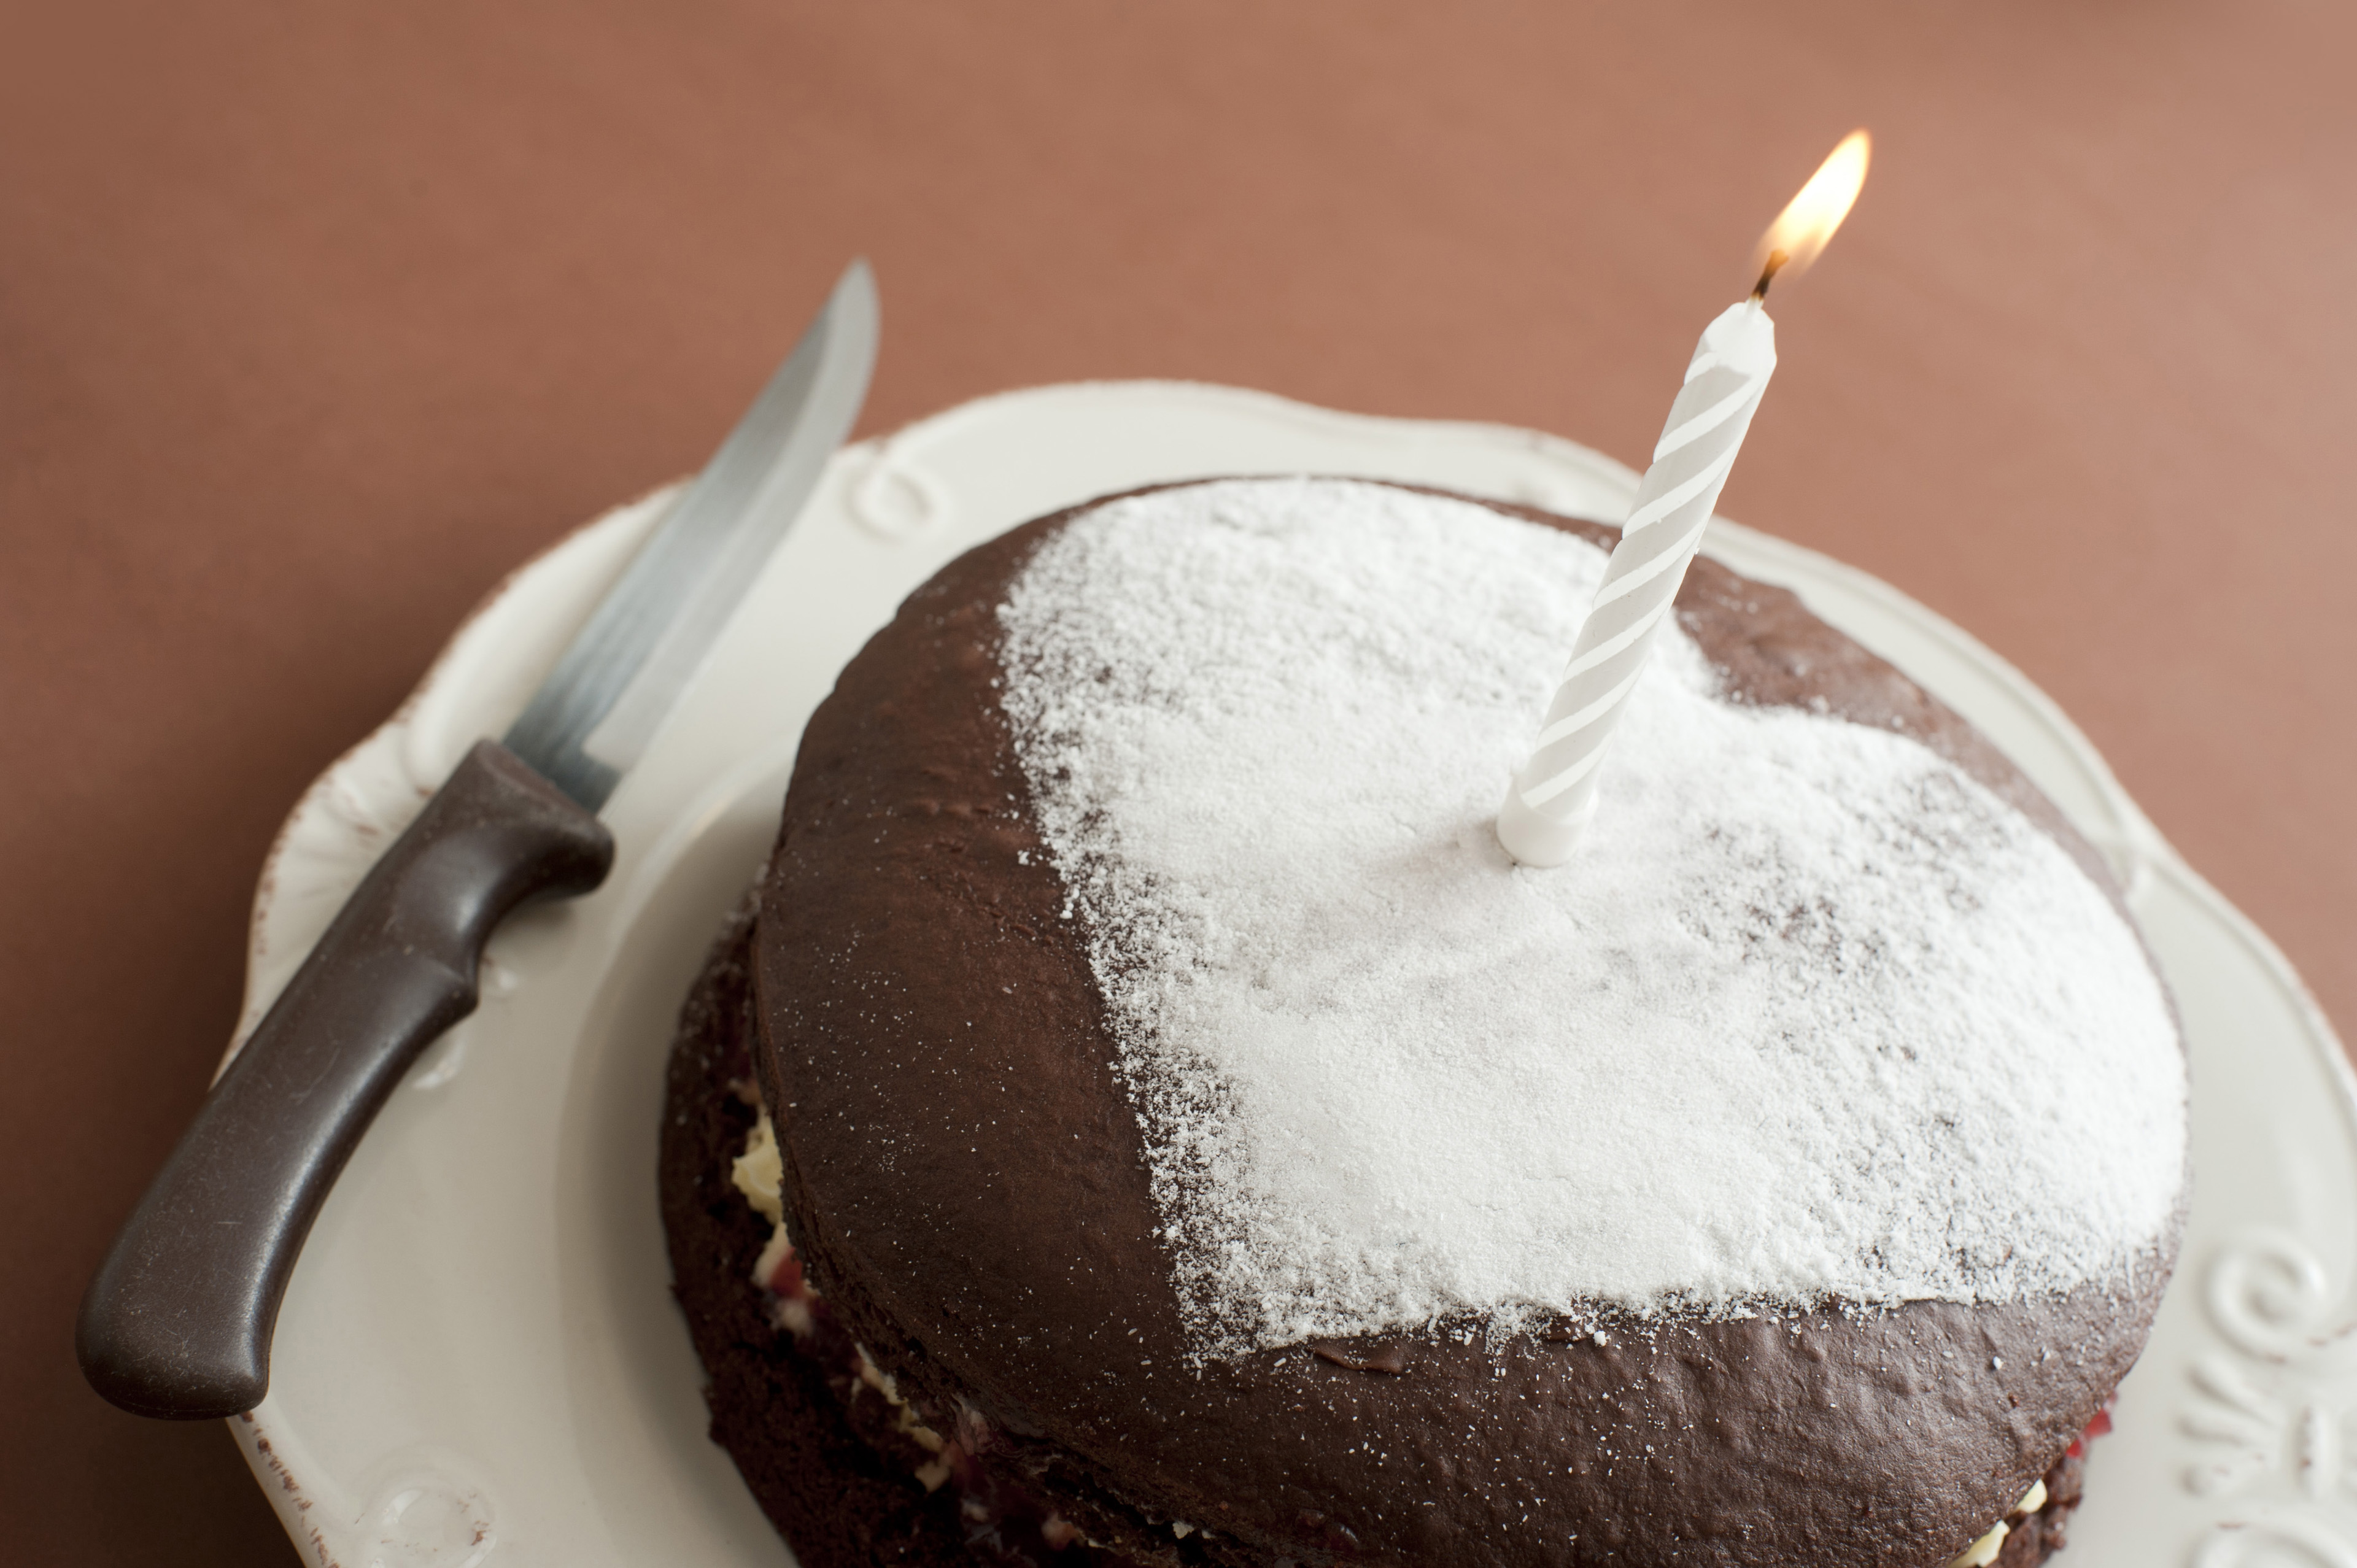 Homemade birthday chocolate cake topped with a vanilla heart shape and a burning candle, celebrating one year